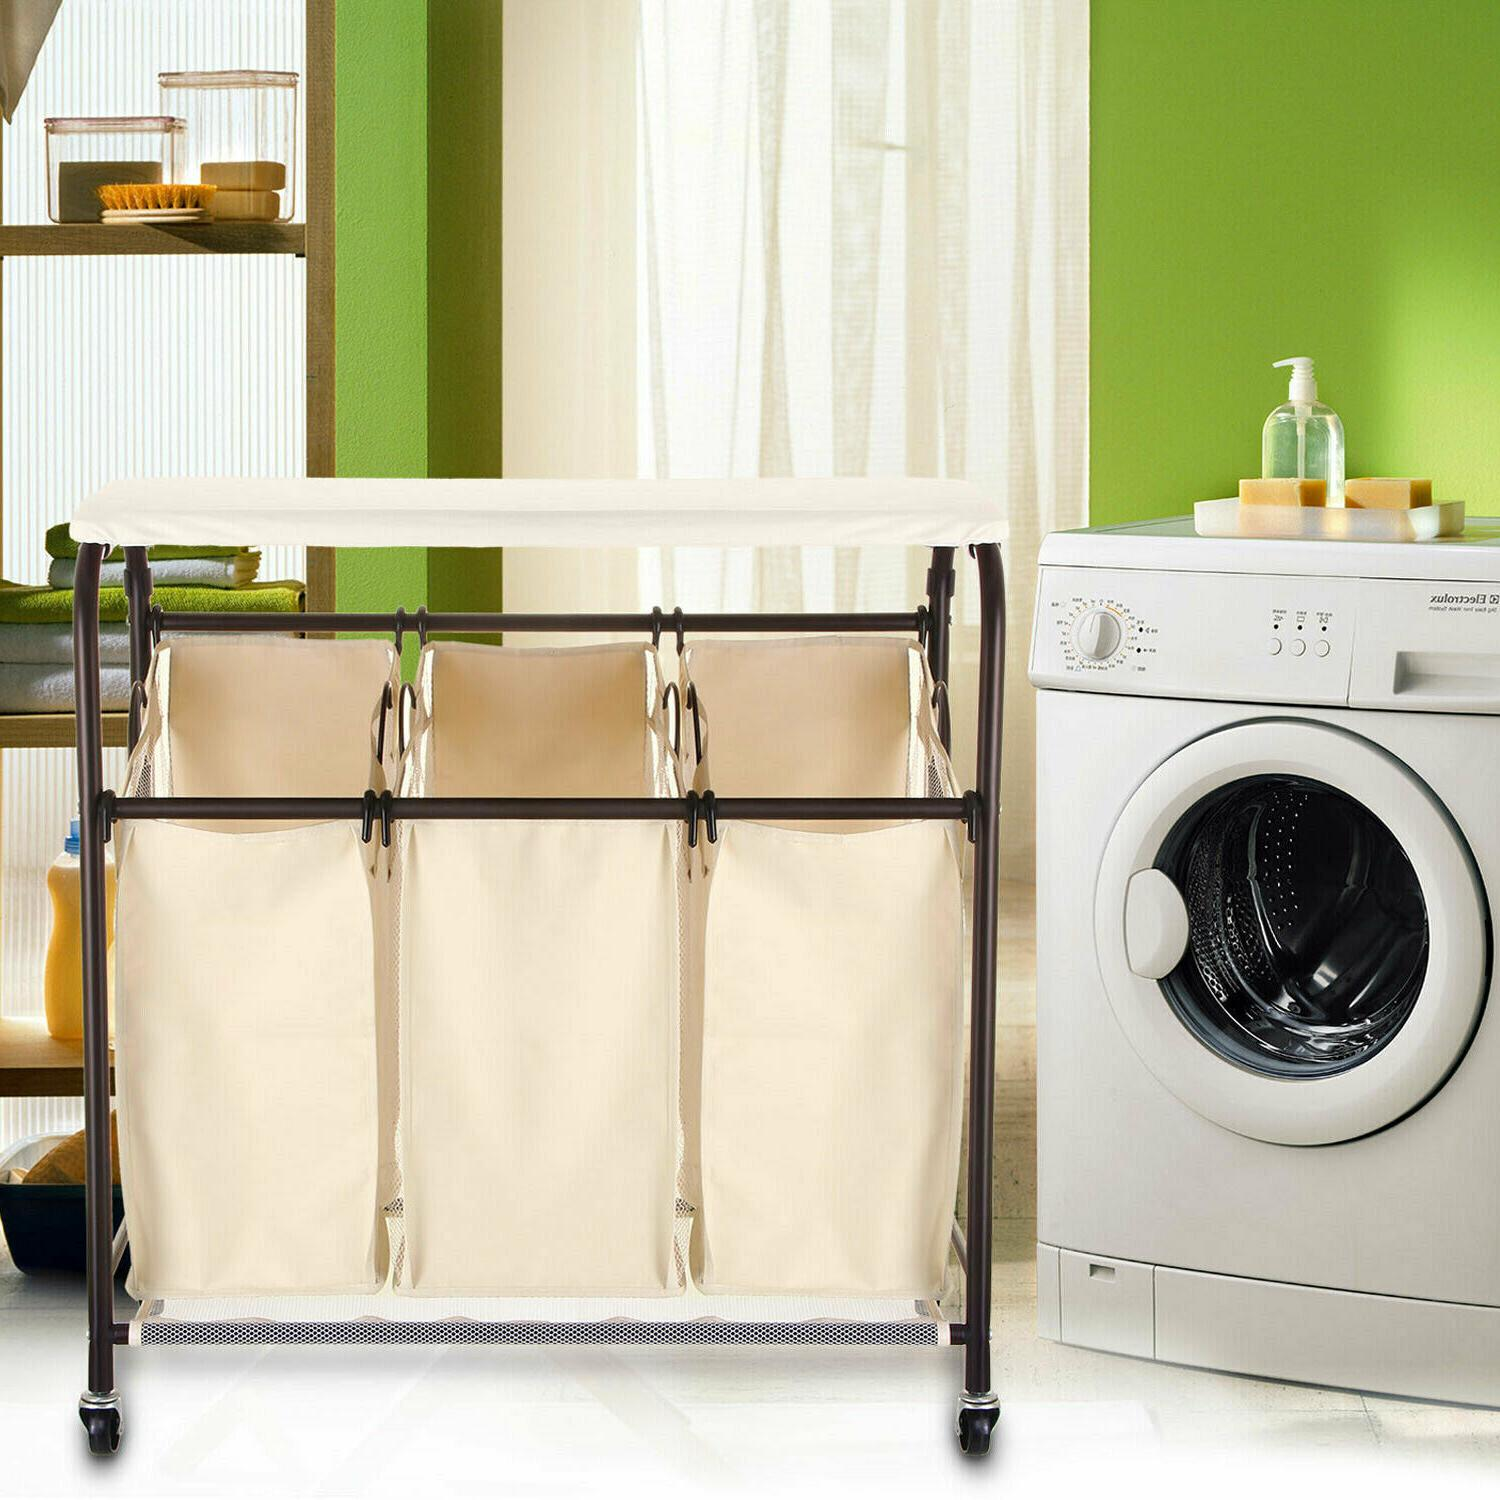 Wheeled Ironing Board Casters